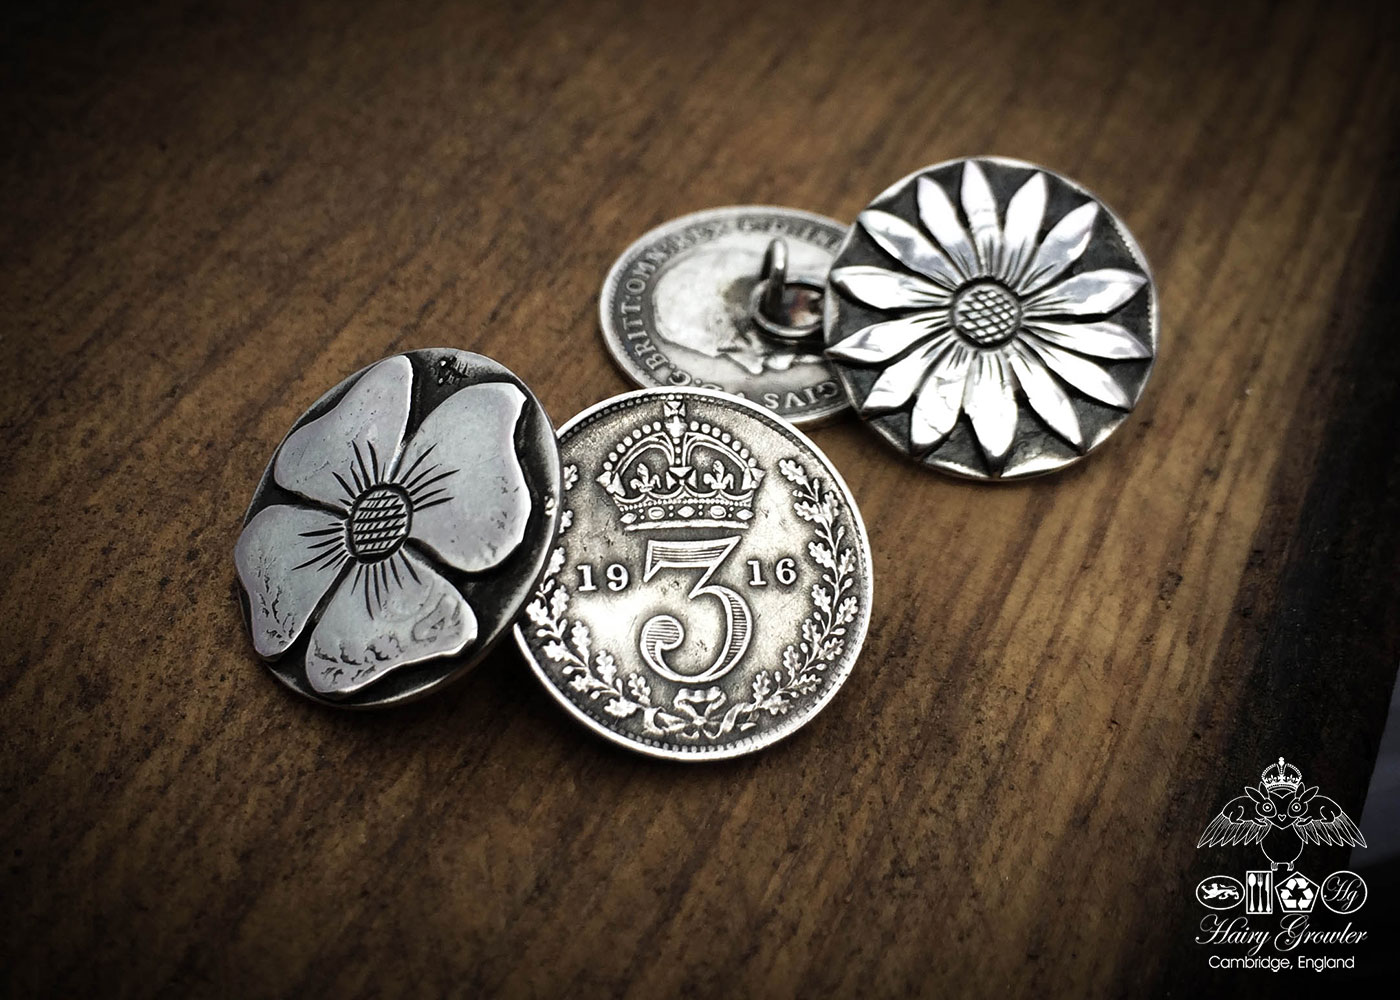 Handmade and repurposed lucky threepence coin flower cufflinks